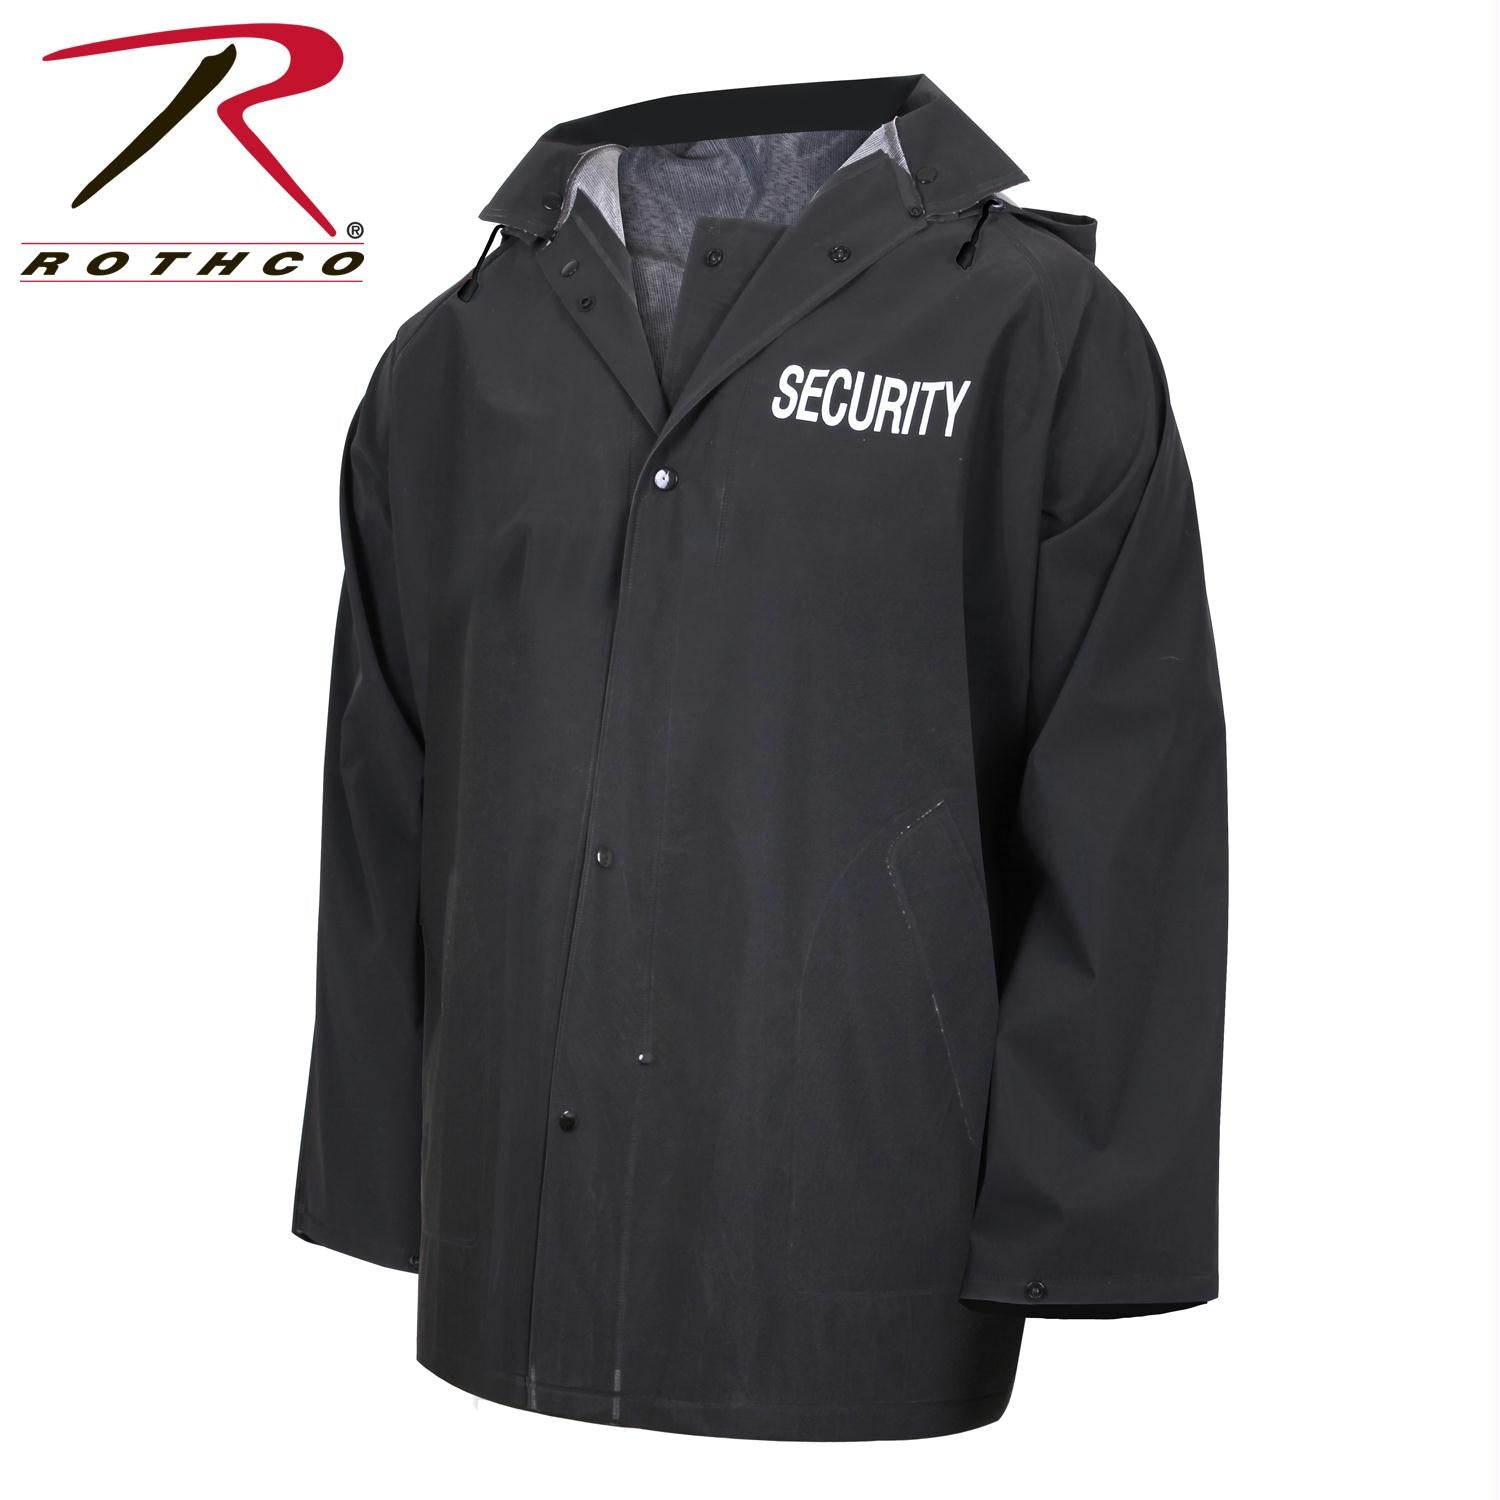 Rothco Security Rain Jacket - L